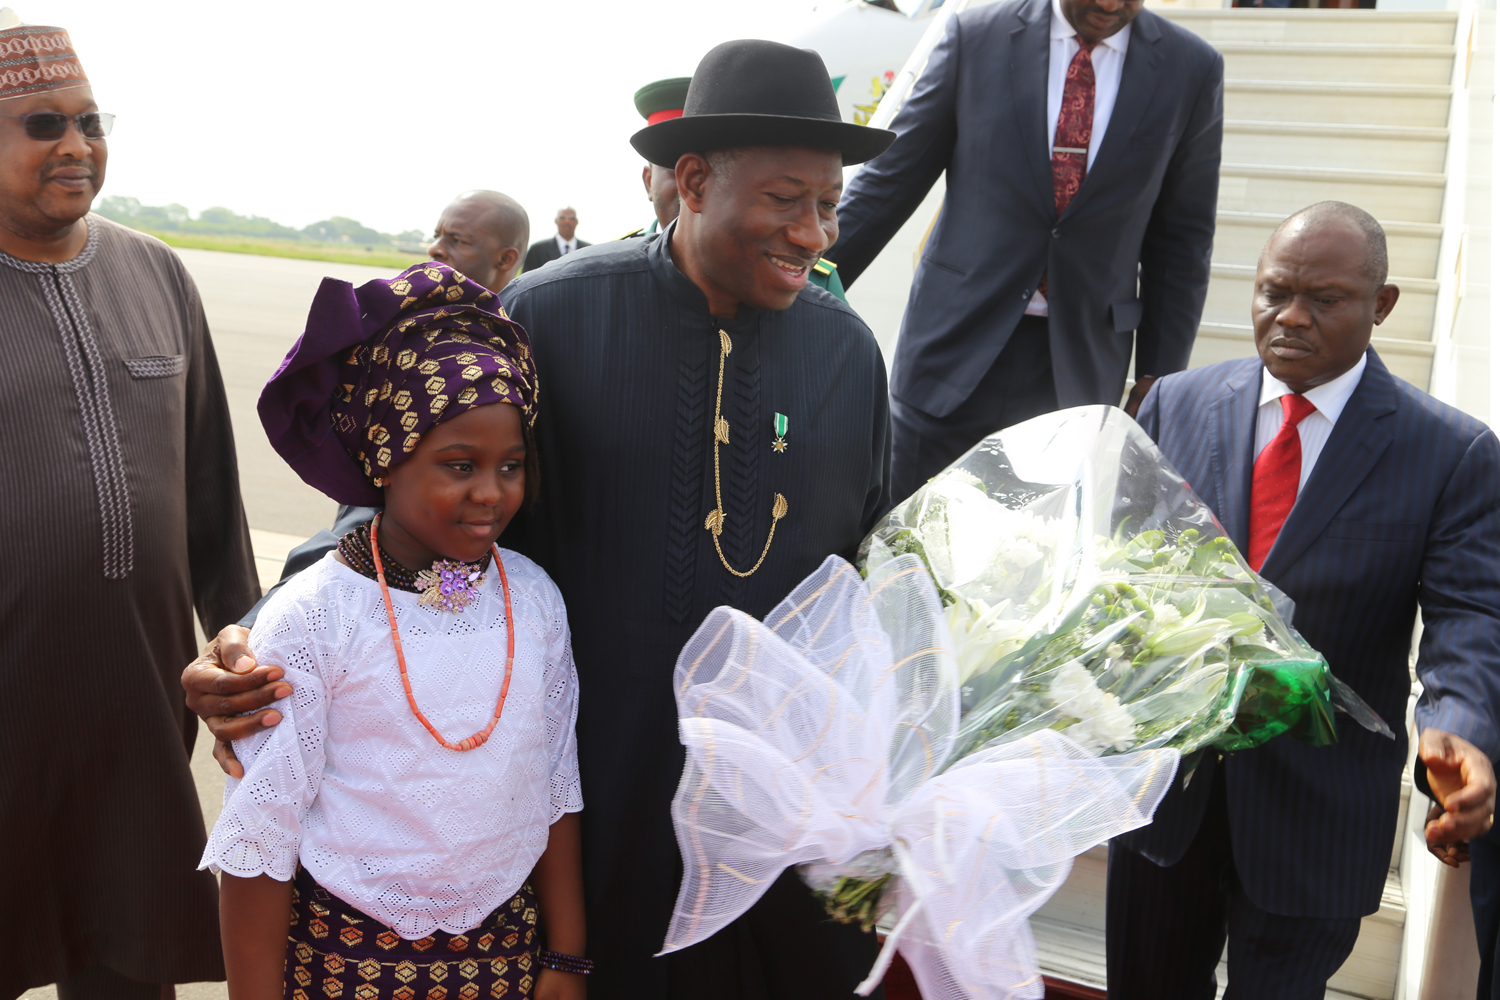 President Goodluck Jonathan and little Bola  on his arrival at Ghana airport to attend the 47th Ordinary Session of the Ecowas Authority of Heads of State and Government